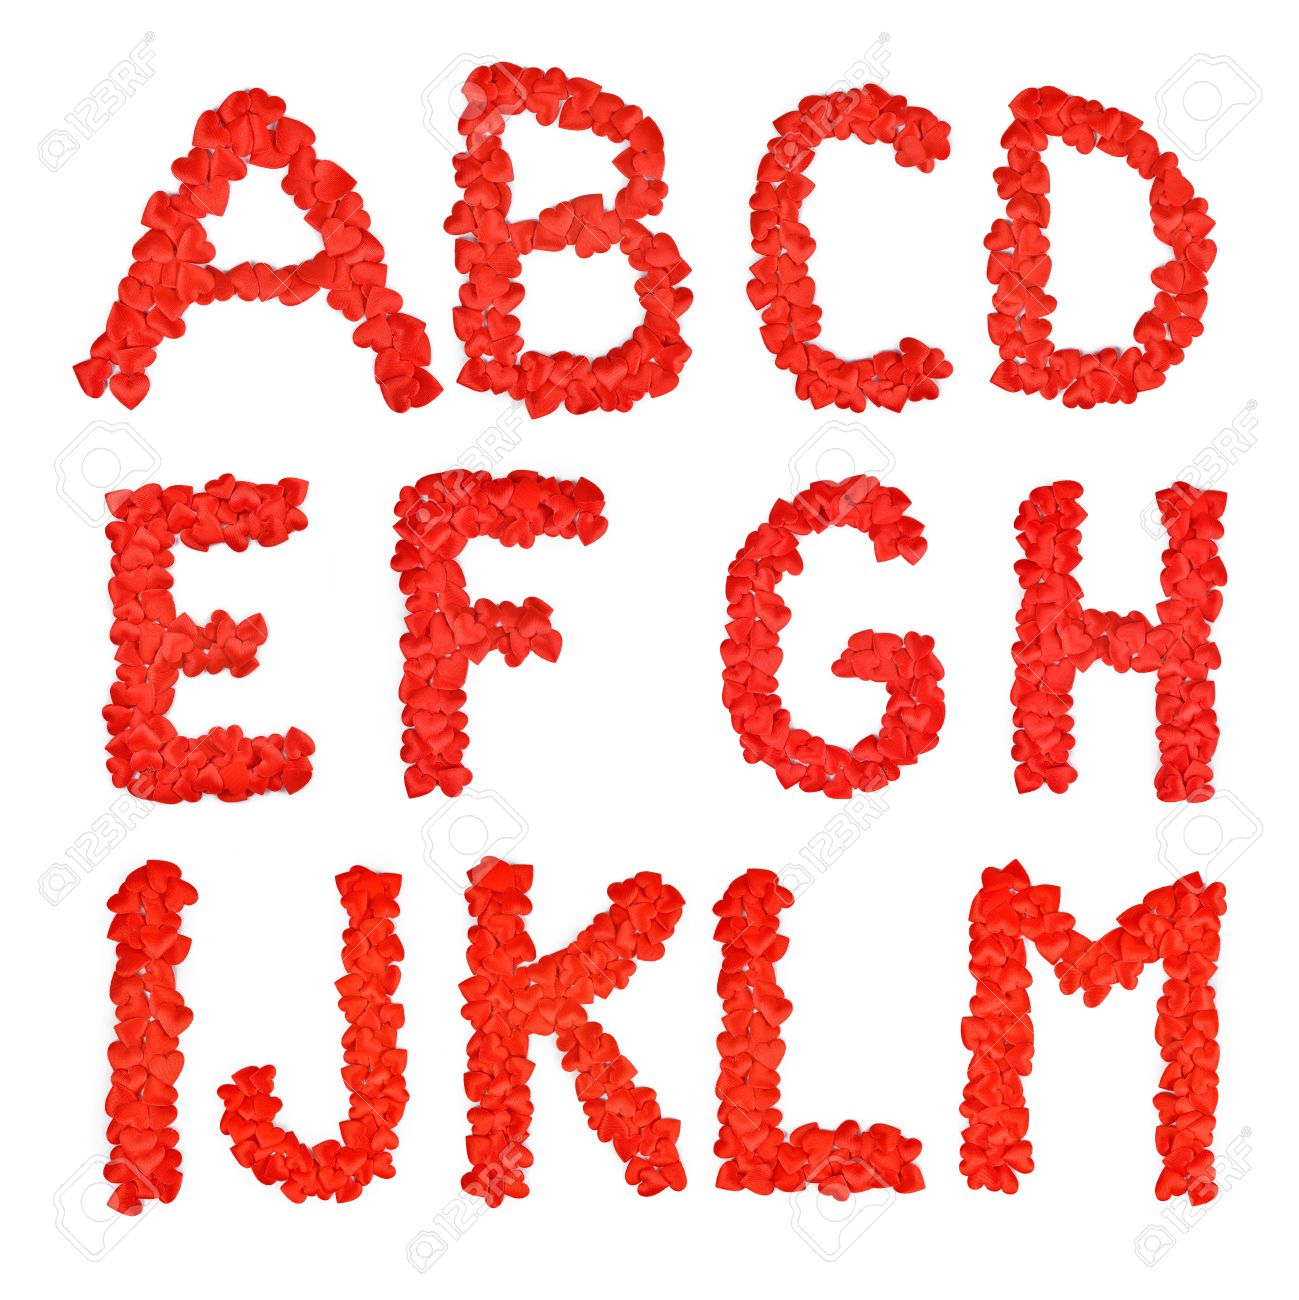 Red Heart Font A Lot Of Hearts In The Form Letters B C D E F G H I J K L M Stock Photo